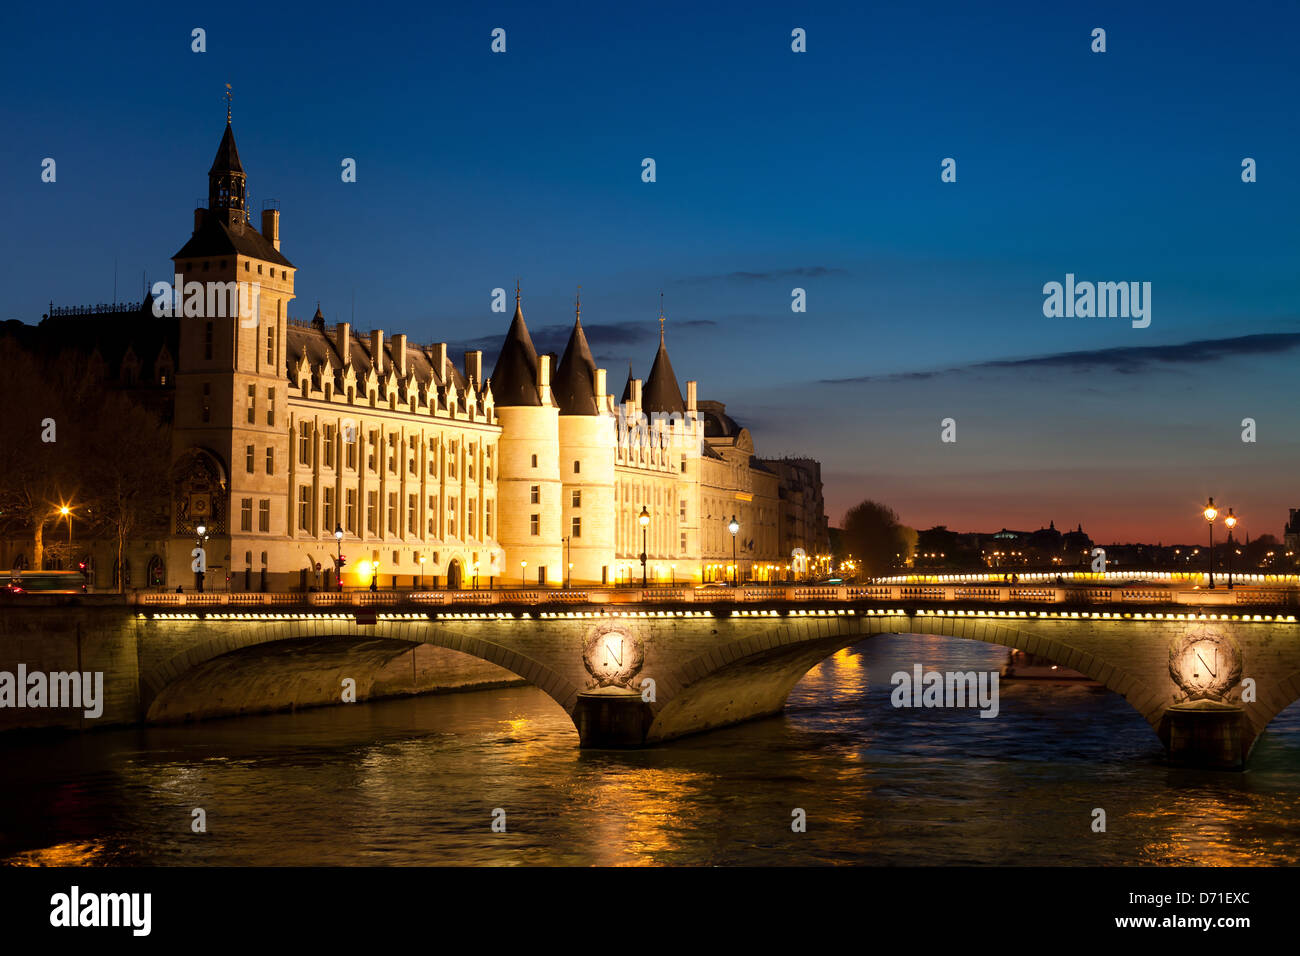 The Pont au Change, bridge over river Seine and the Conciergerie, a former royal palace and prison in Paris, France - Stock Image